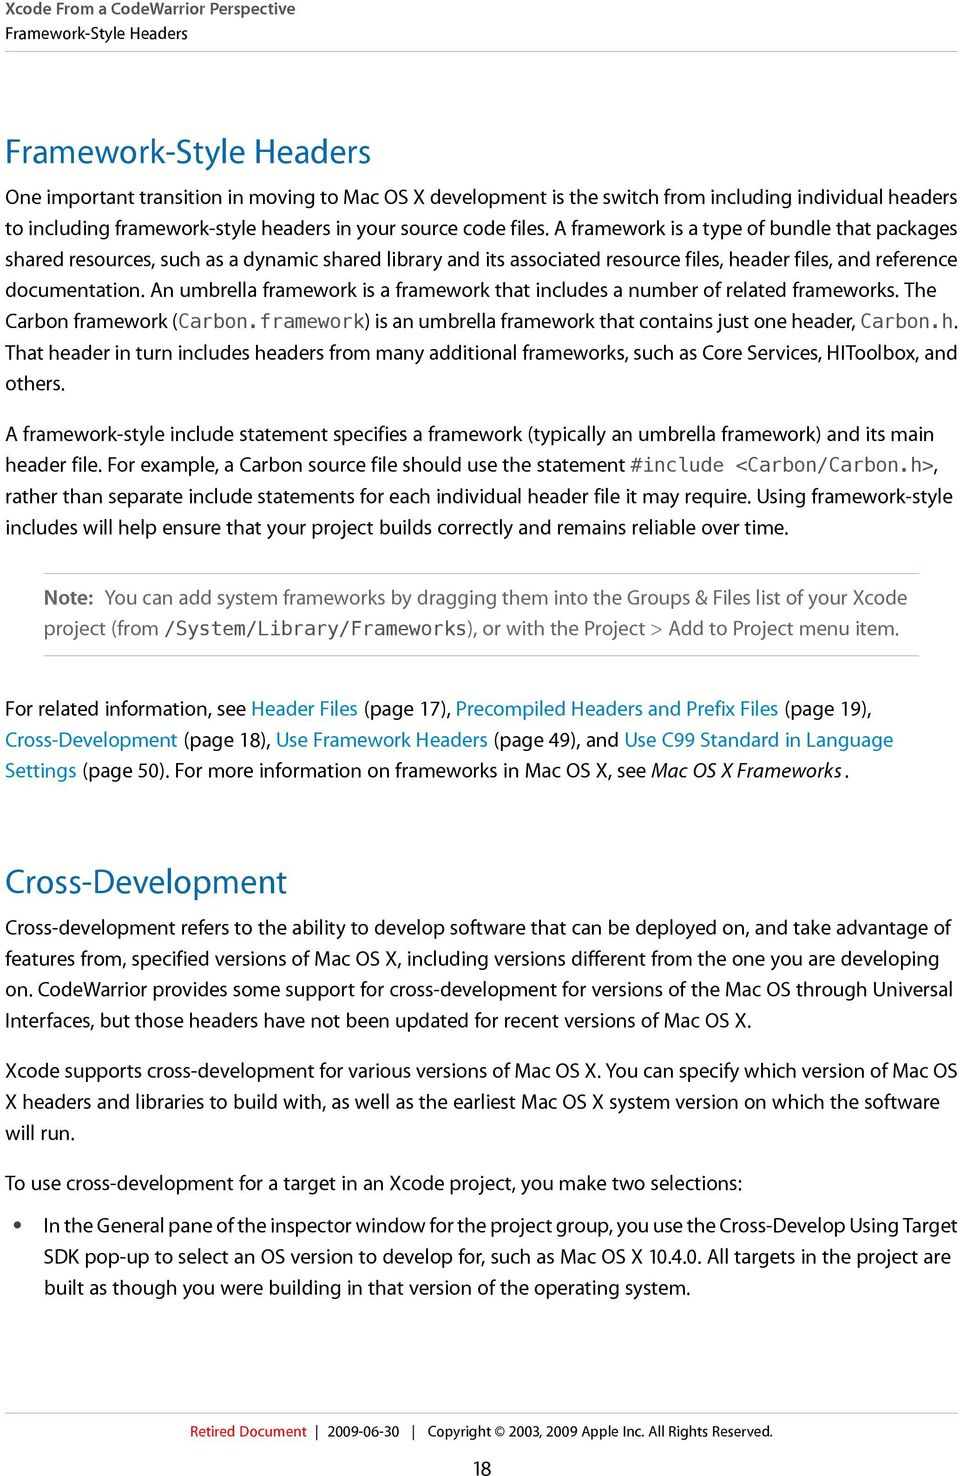 Porting CodeWarrior Projects to Xcode  (Legacy) - PDF